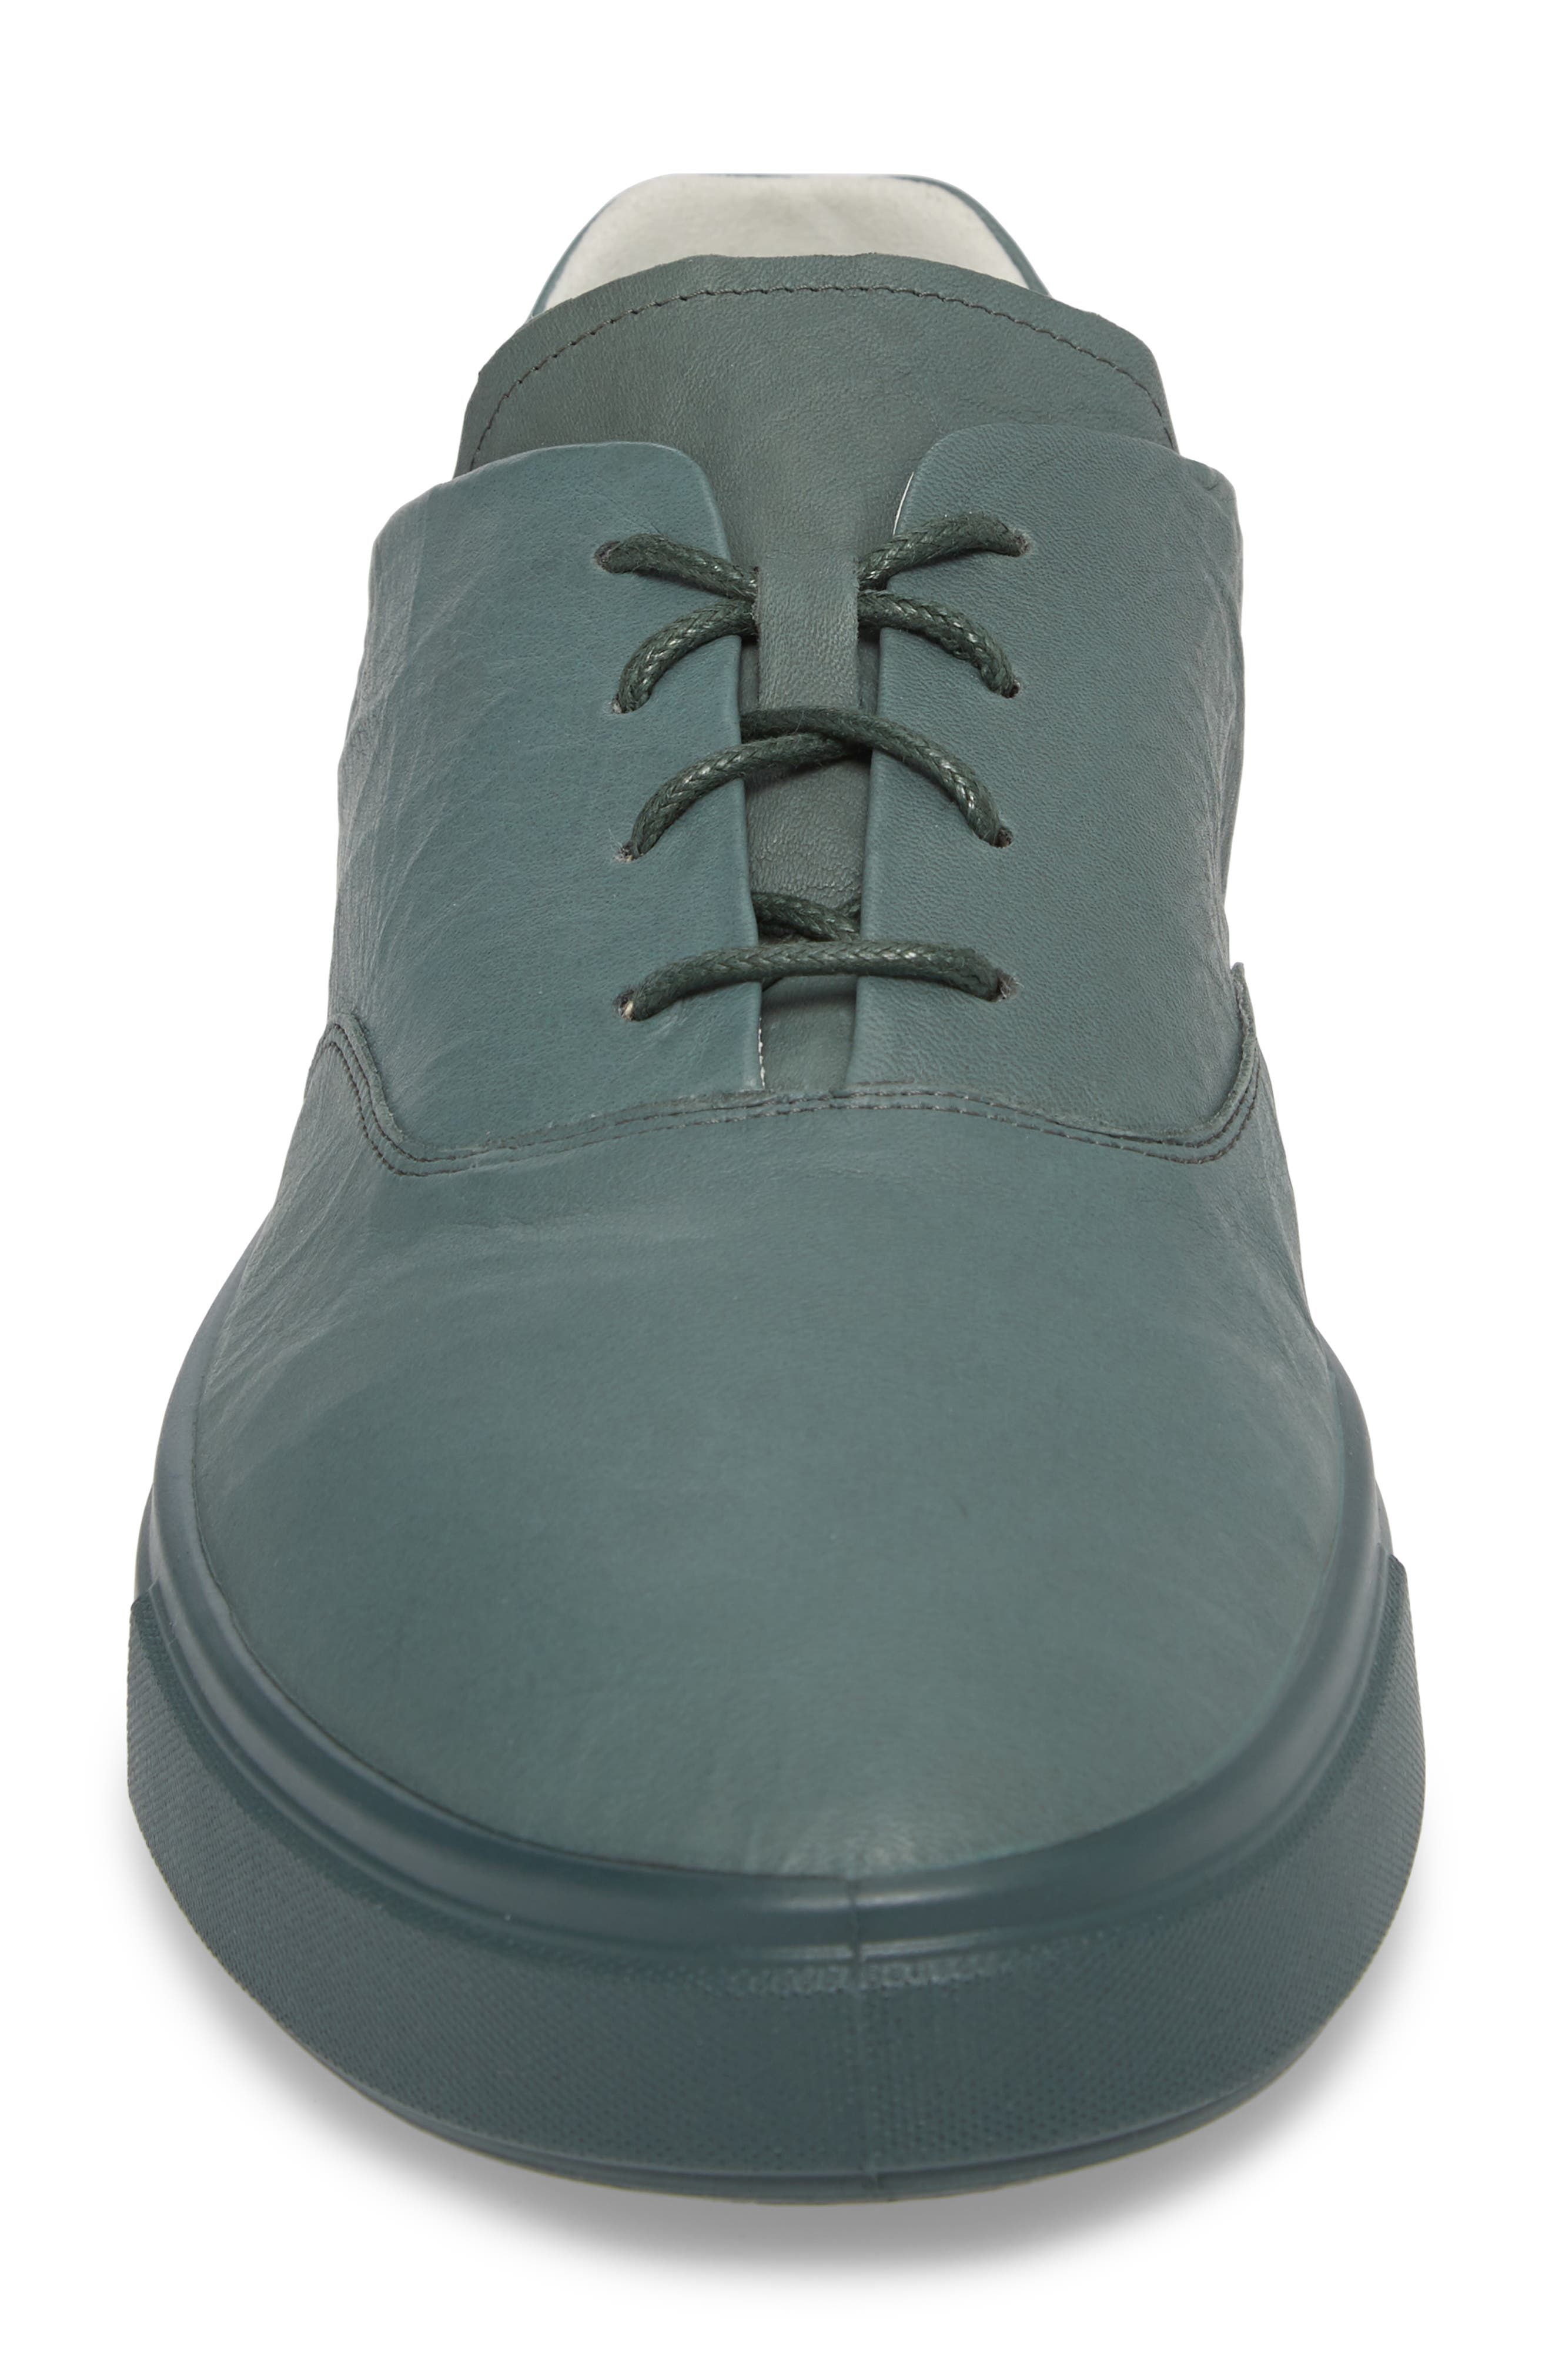 Kyle Low Top Sneaker,                             Alternate thumbnail 4, color,                             Military Sage Leather